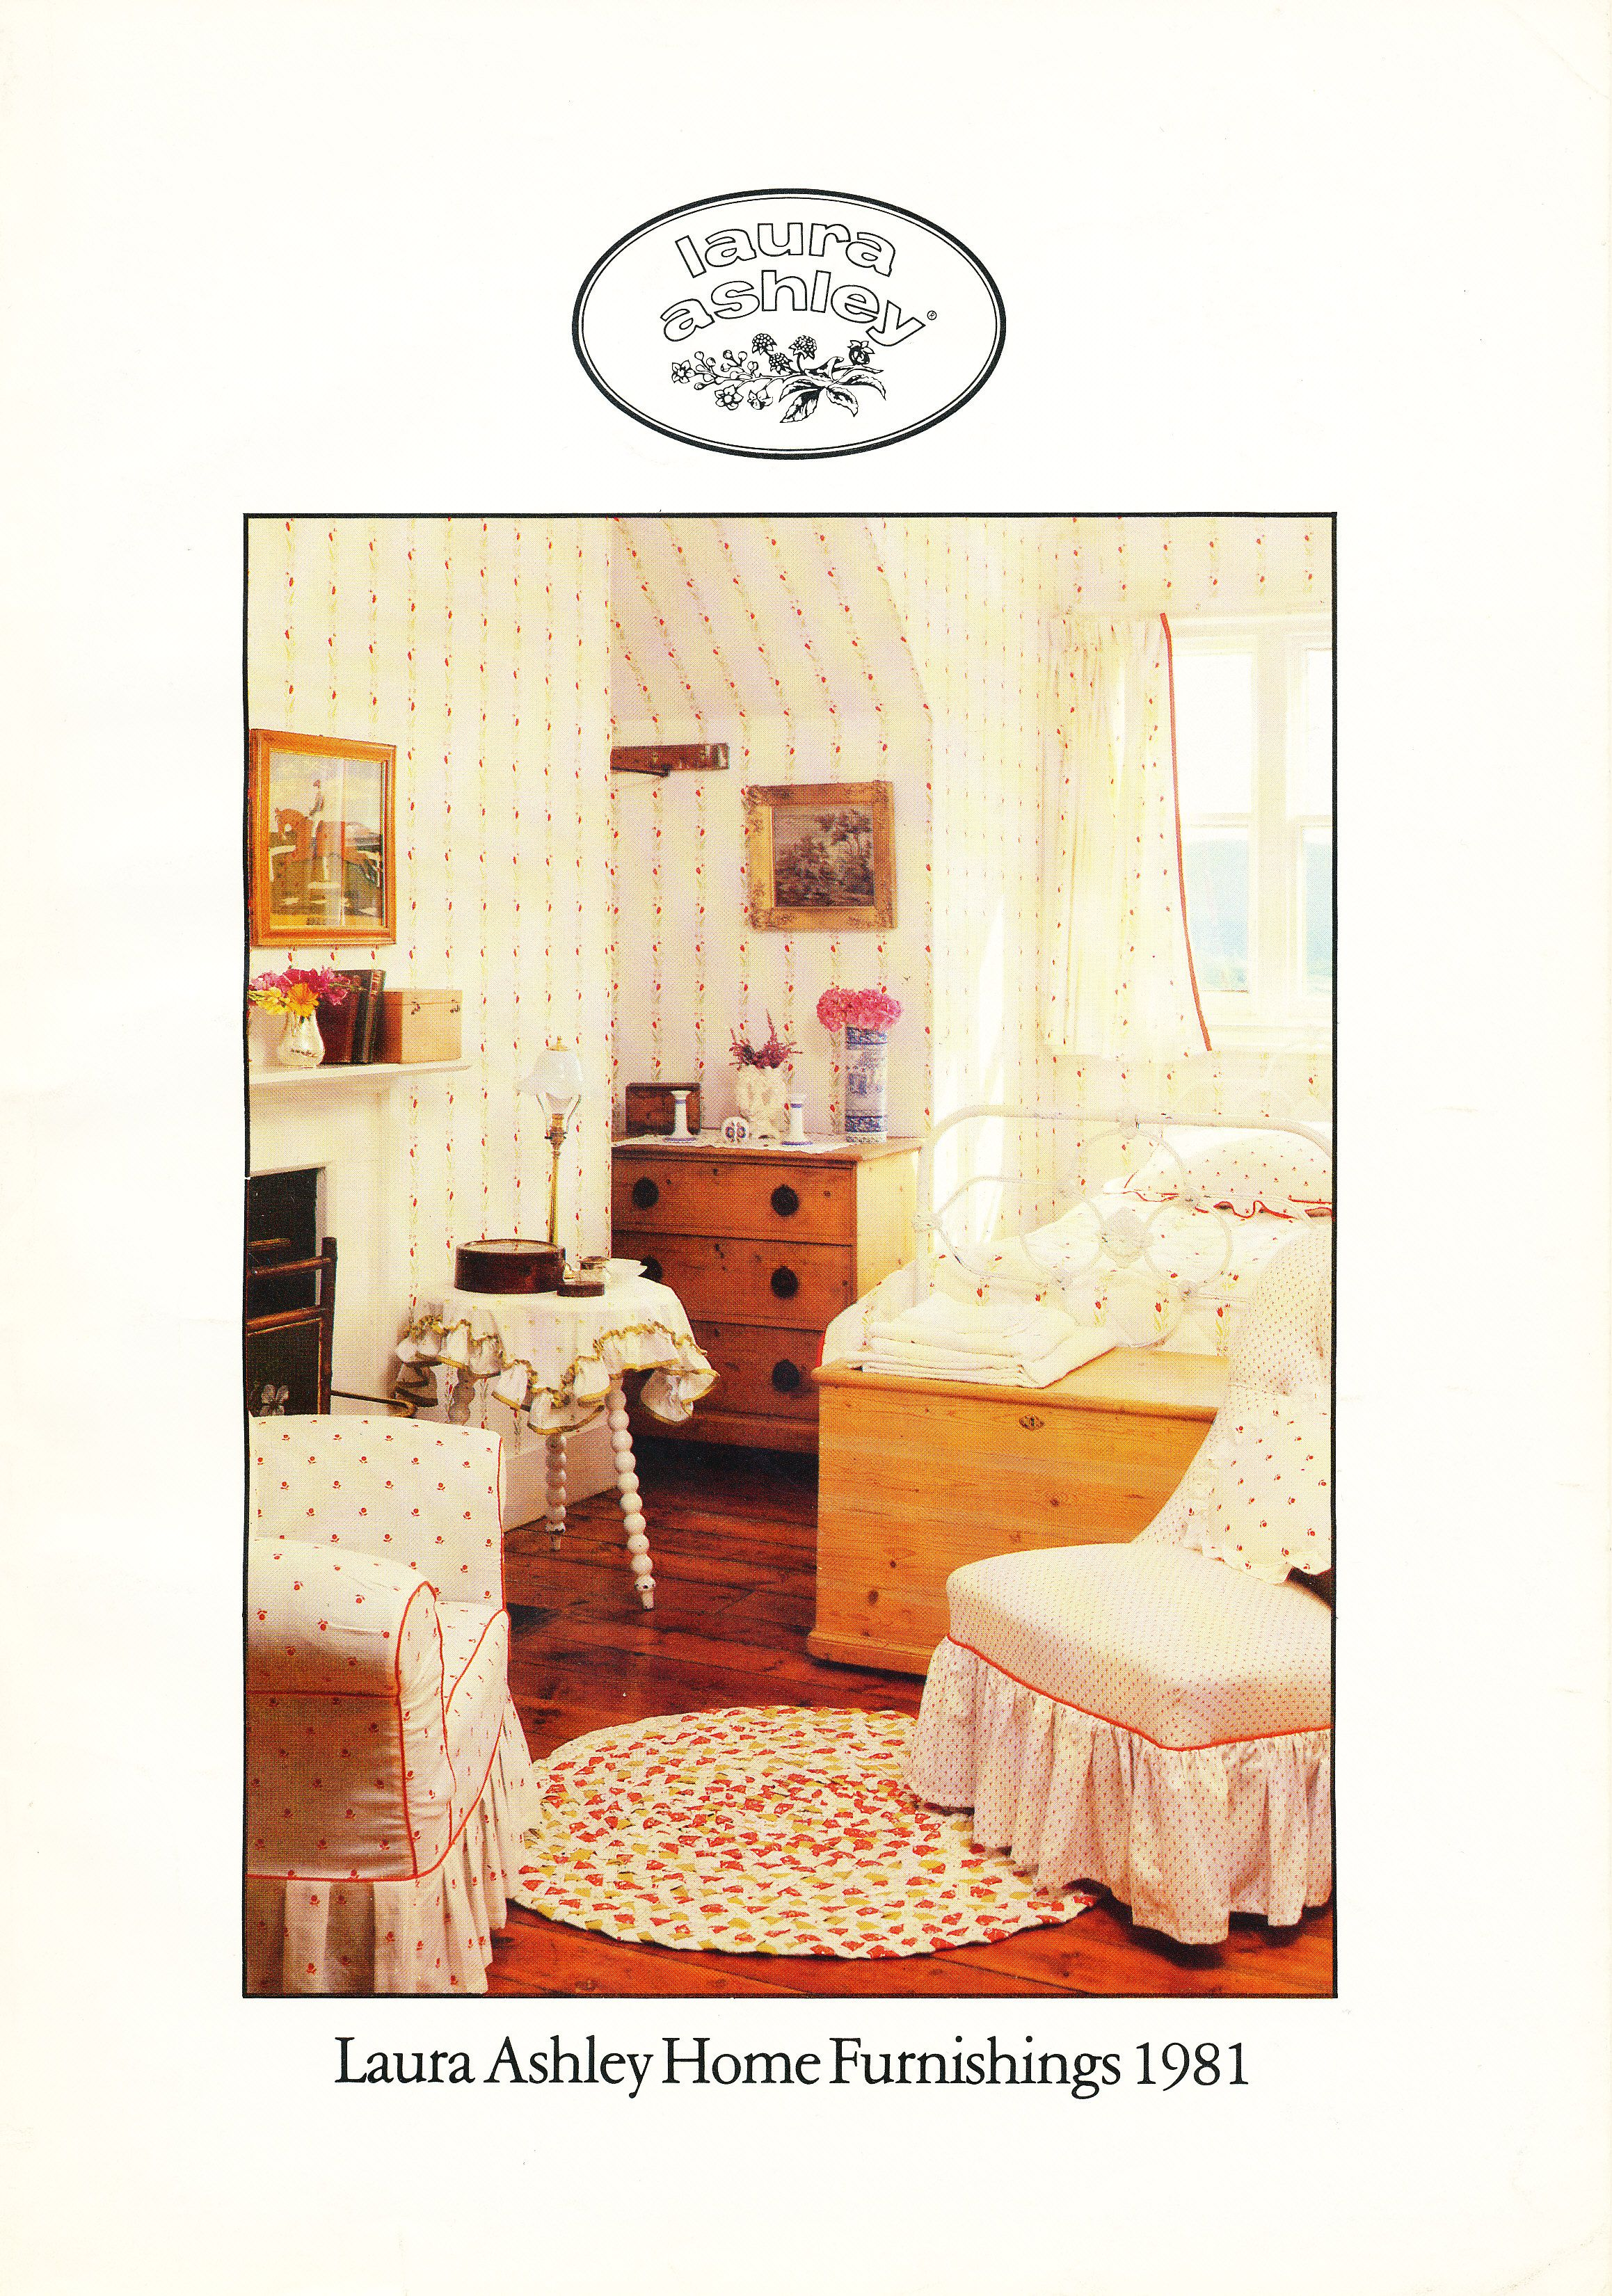 Our Home Furnishings Brochure From 1981 Lauraashley60